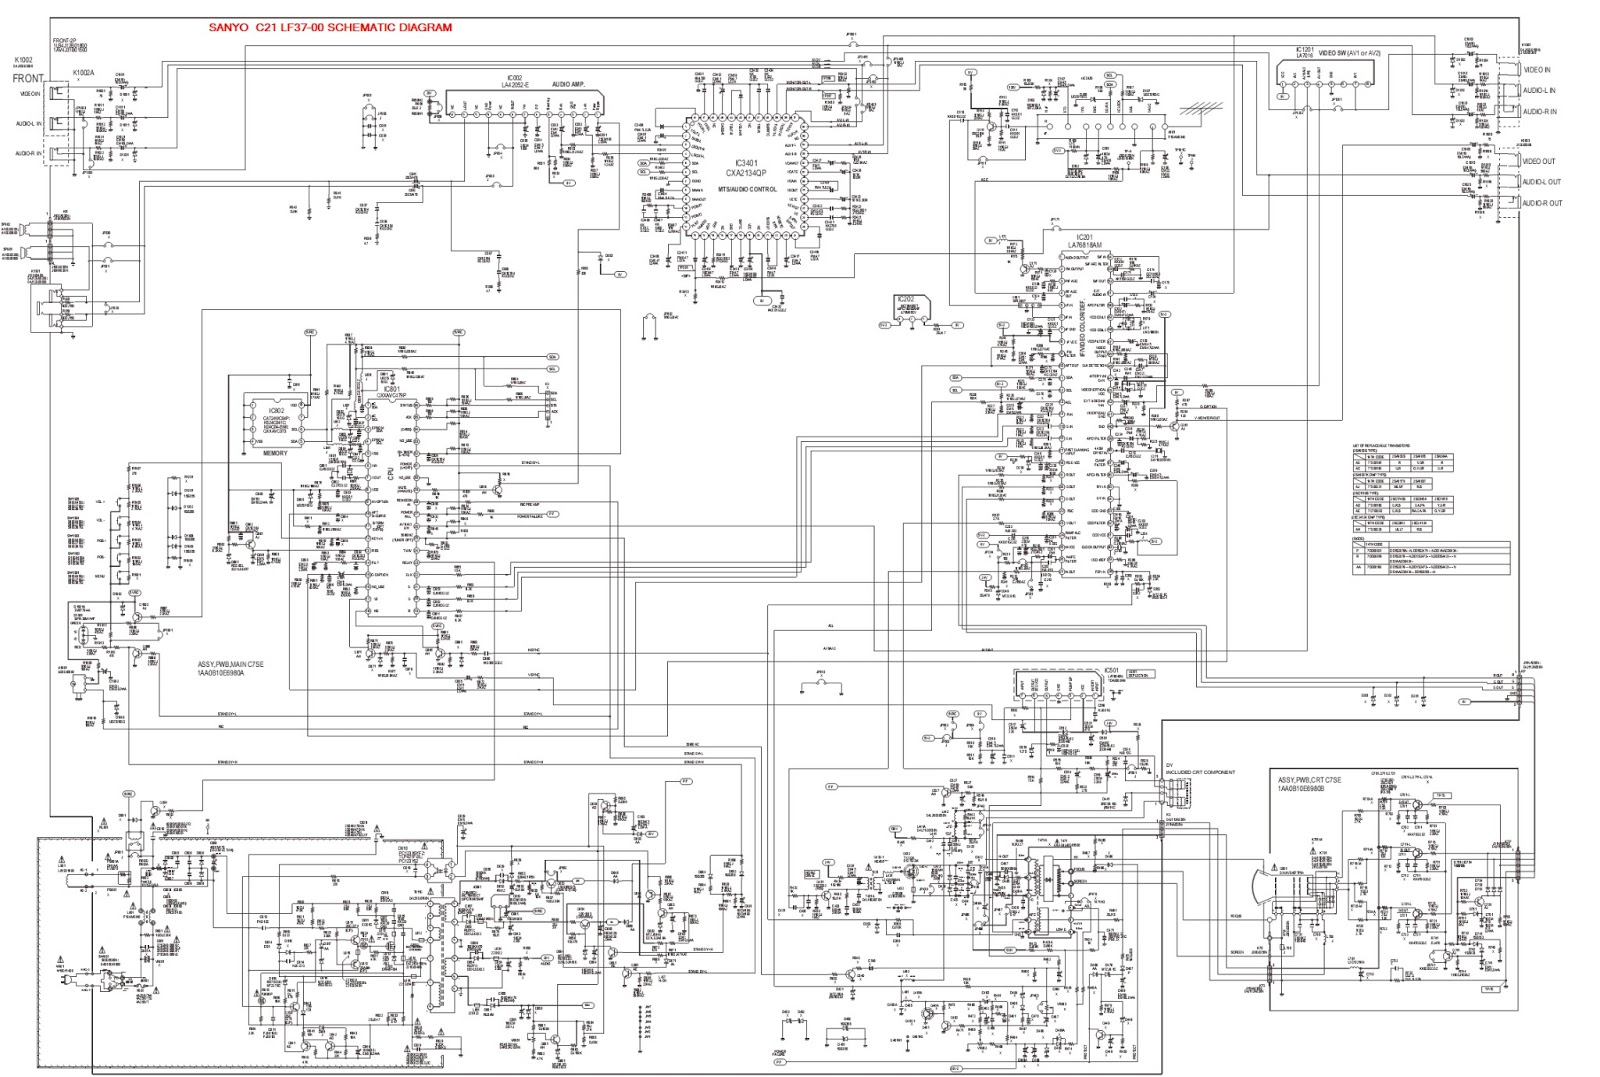 Sanyo C21lf37 Ctv Schematic Diagram Circuit Main Wiring For Televisions Board Crt